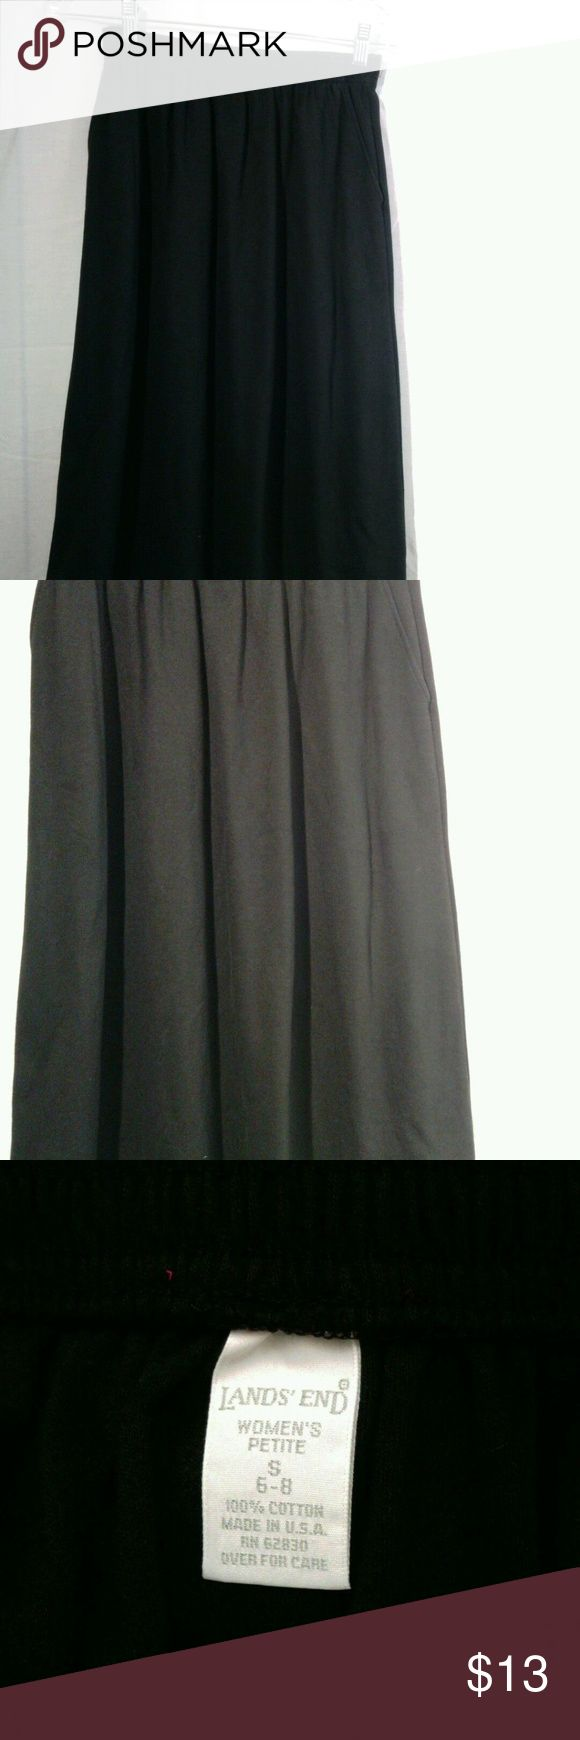 "Lands End Womens Black  Skirt Size Small Lands End Womens Black  Skirt Size Small Petite  made USA 100% Cotton  Waist: 22""  Length: 27"" Lands End Skirts Midi"